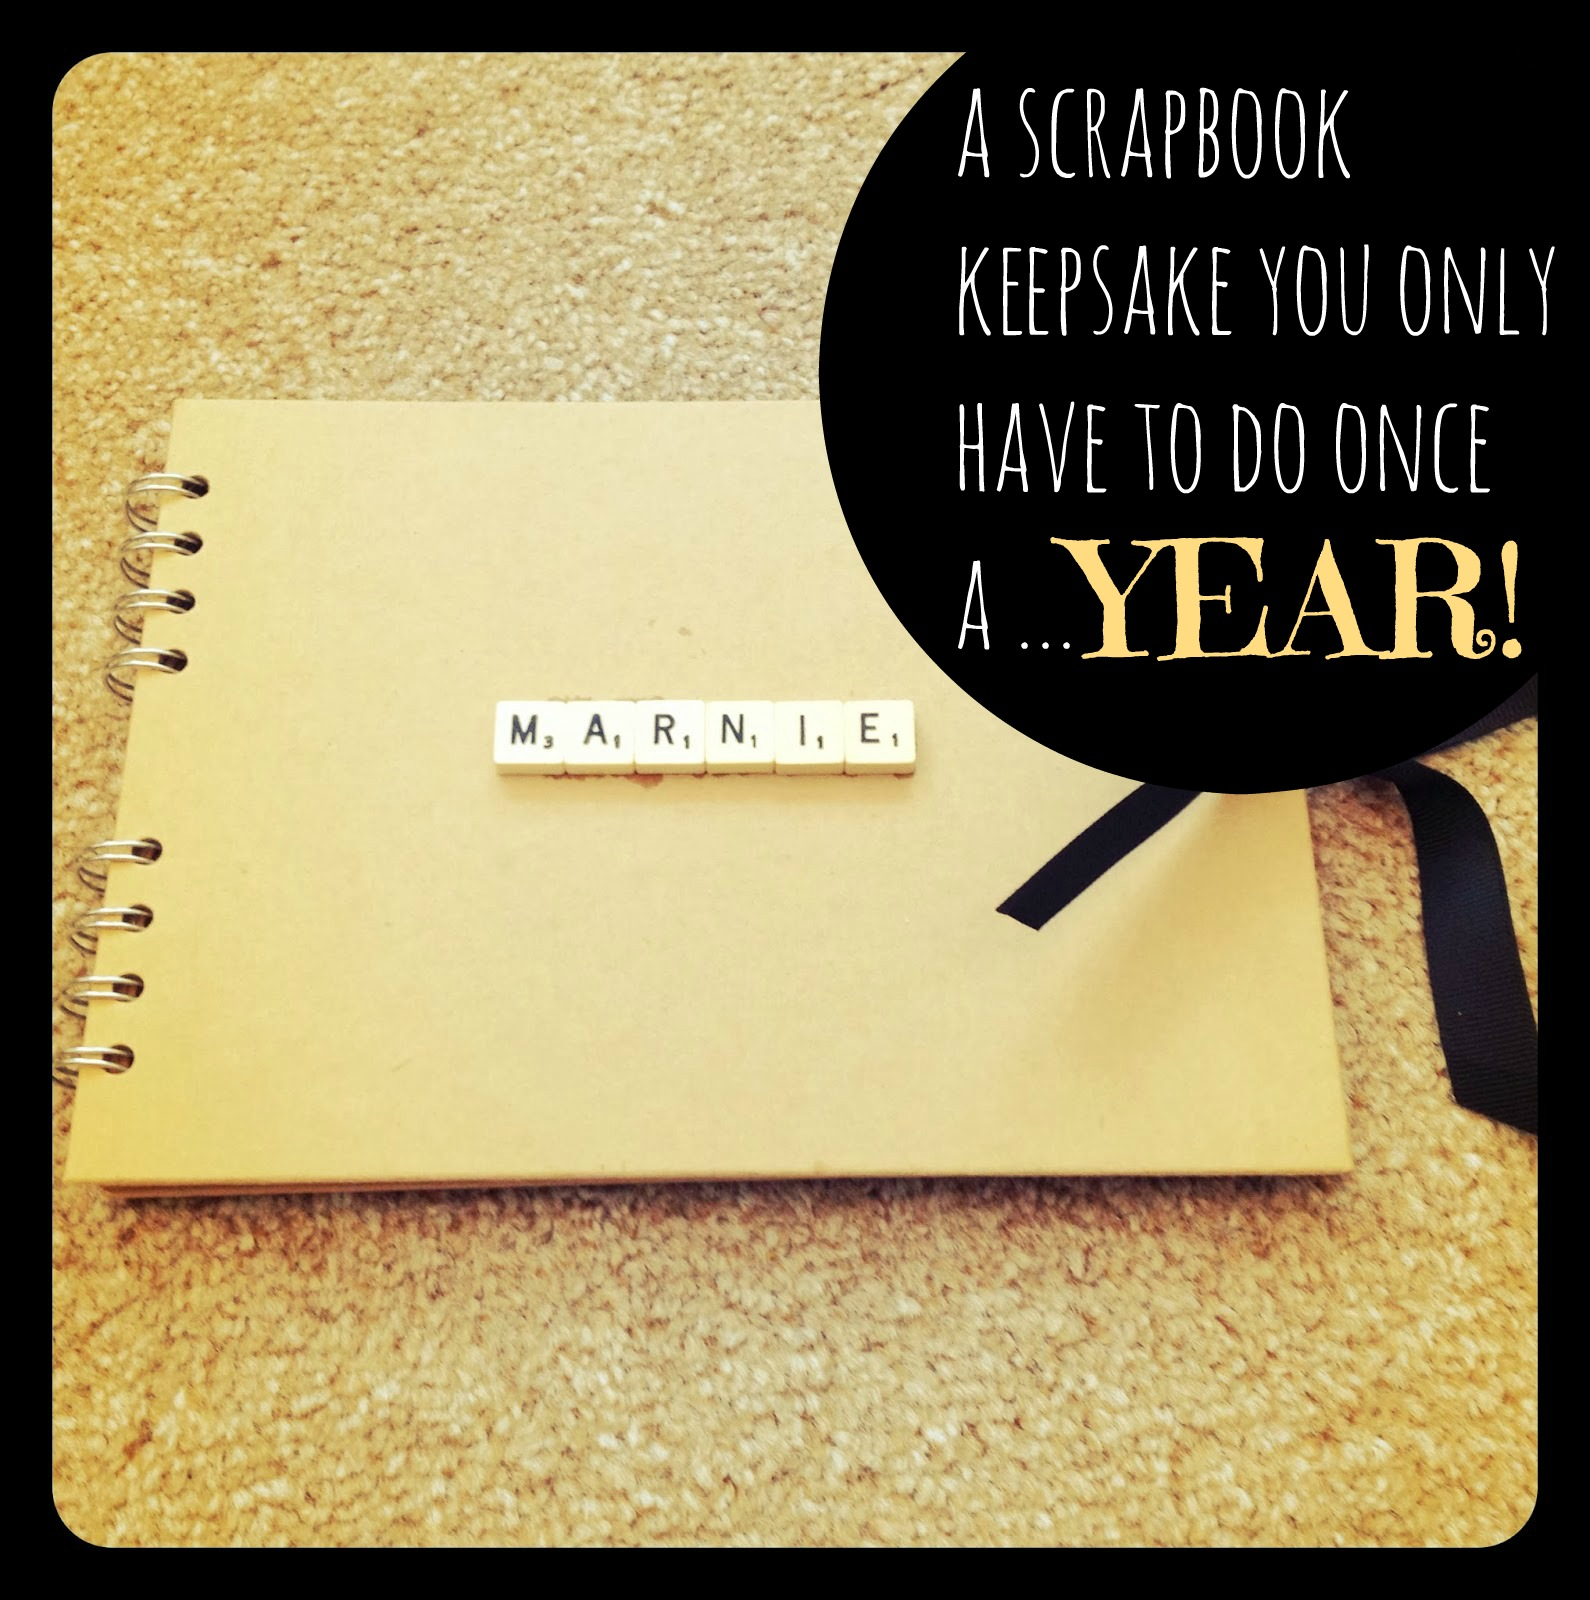 Scrapbook ideas cheap - V I Busy Bees A Scrapbook Photograph Idea For Time Pressed Mamas That You Do Once A Year